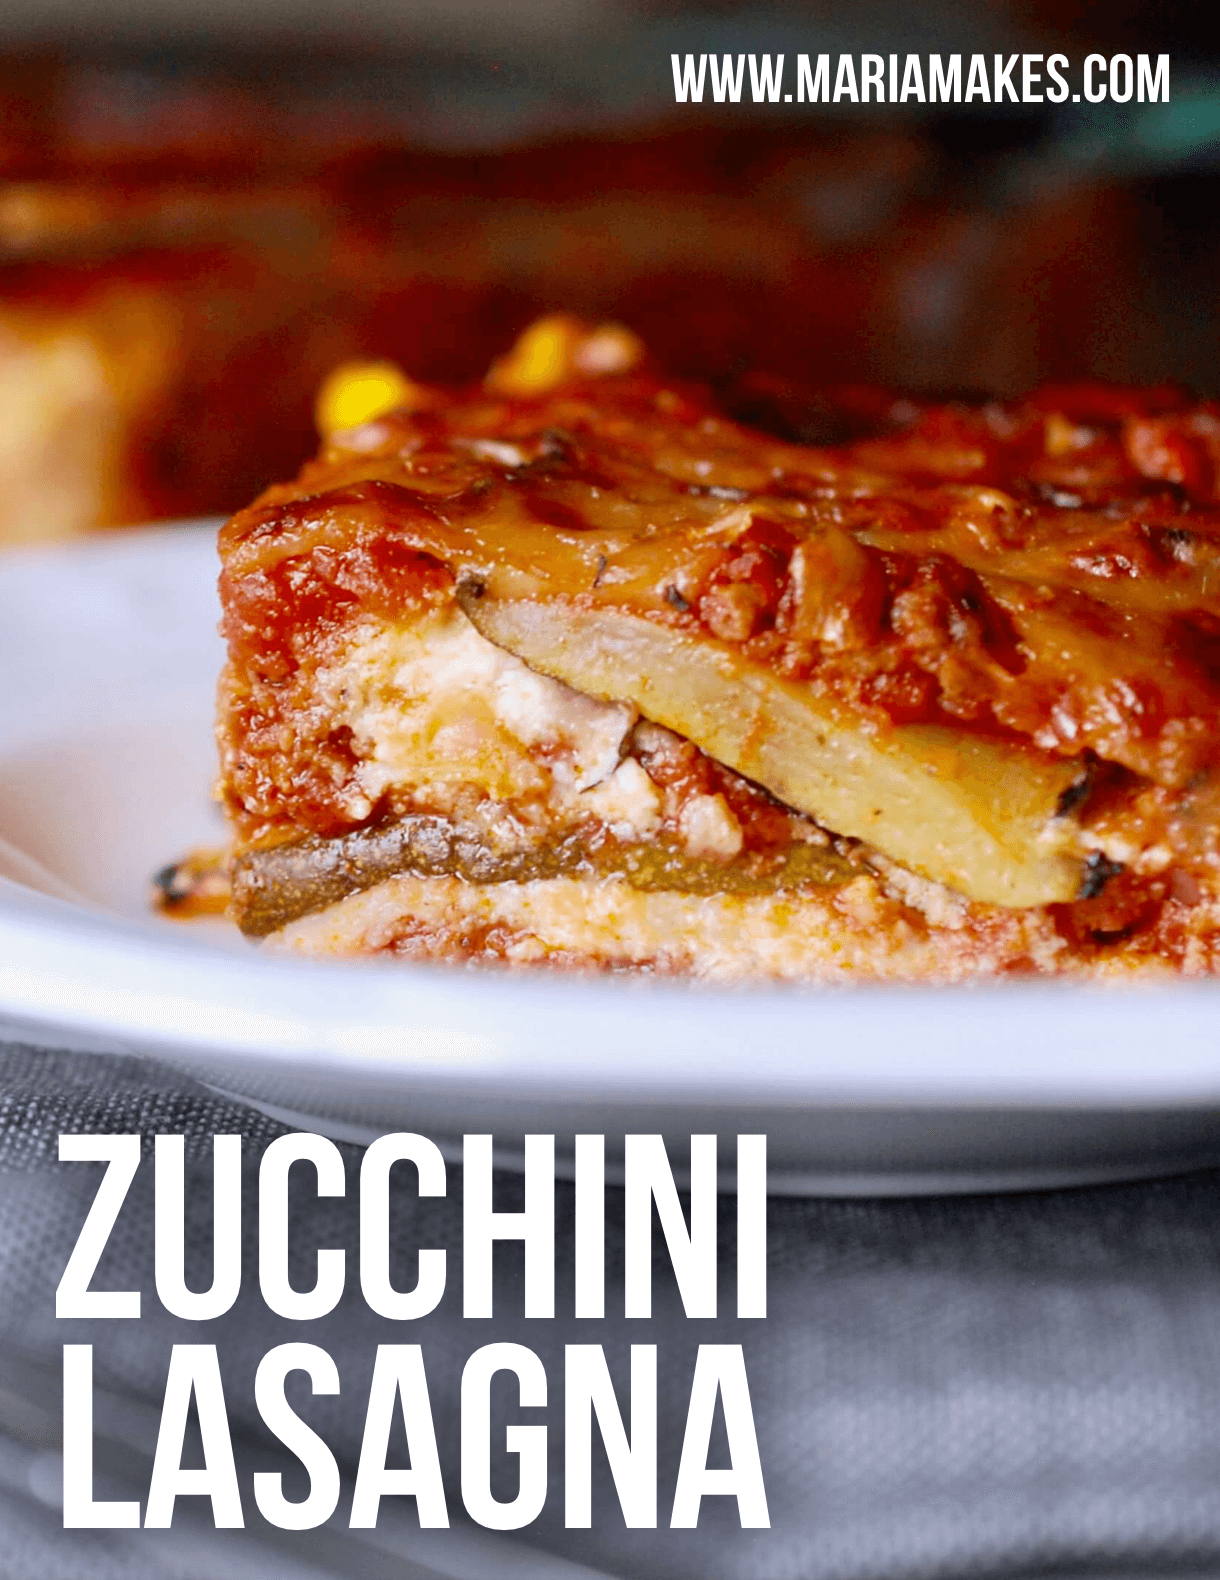 Zucchini Lasagna – Maria Makes: A recipe I've been making for YEARS and I'm finally posting it to the blog! Cheesy, ooey and gooey like traditional lasagna, but made just a tiny bit lighter and fresher with grilled zucchini in place of lasagna noodles.